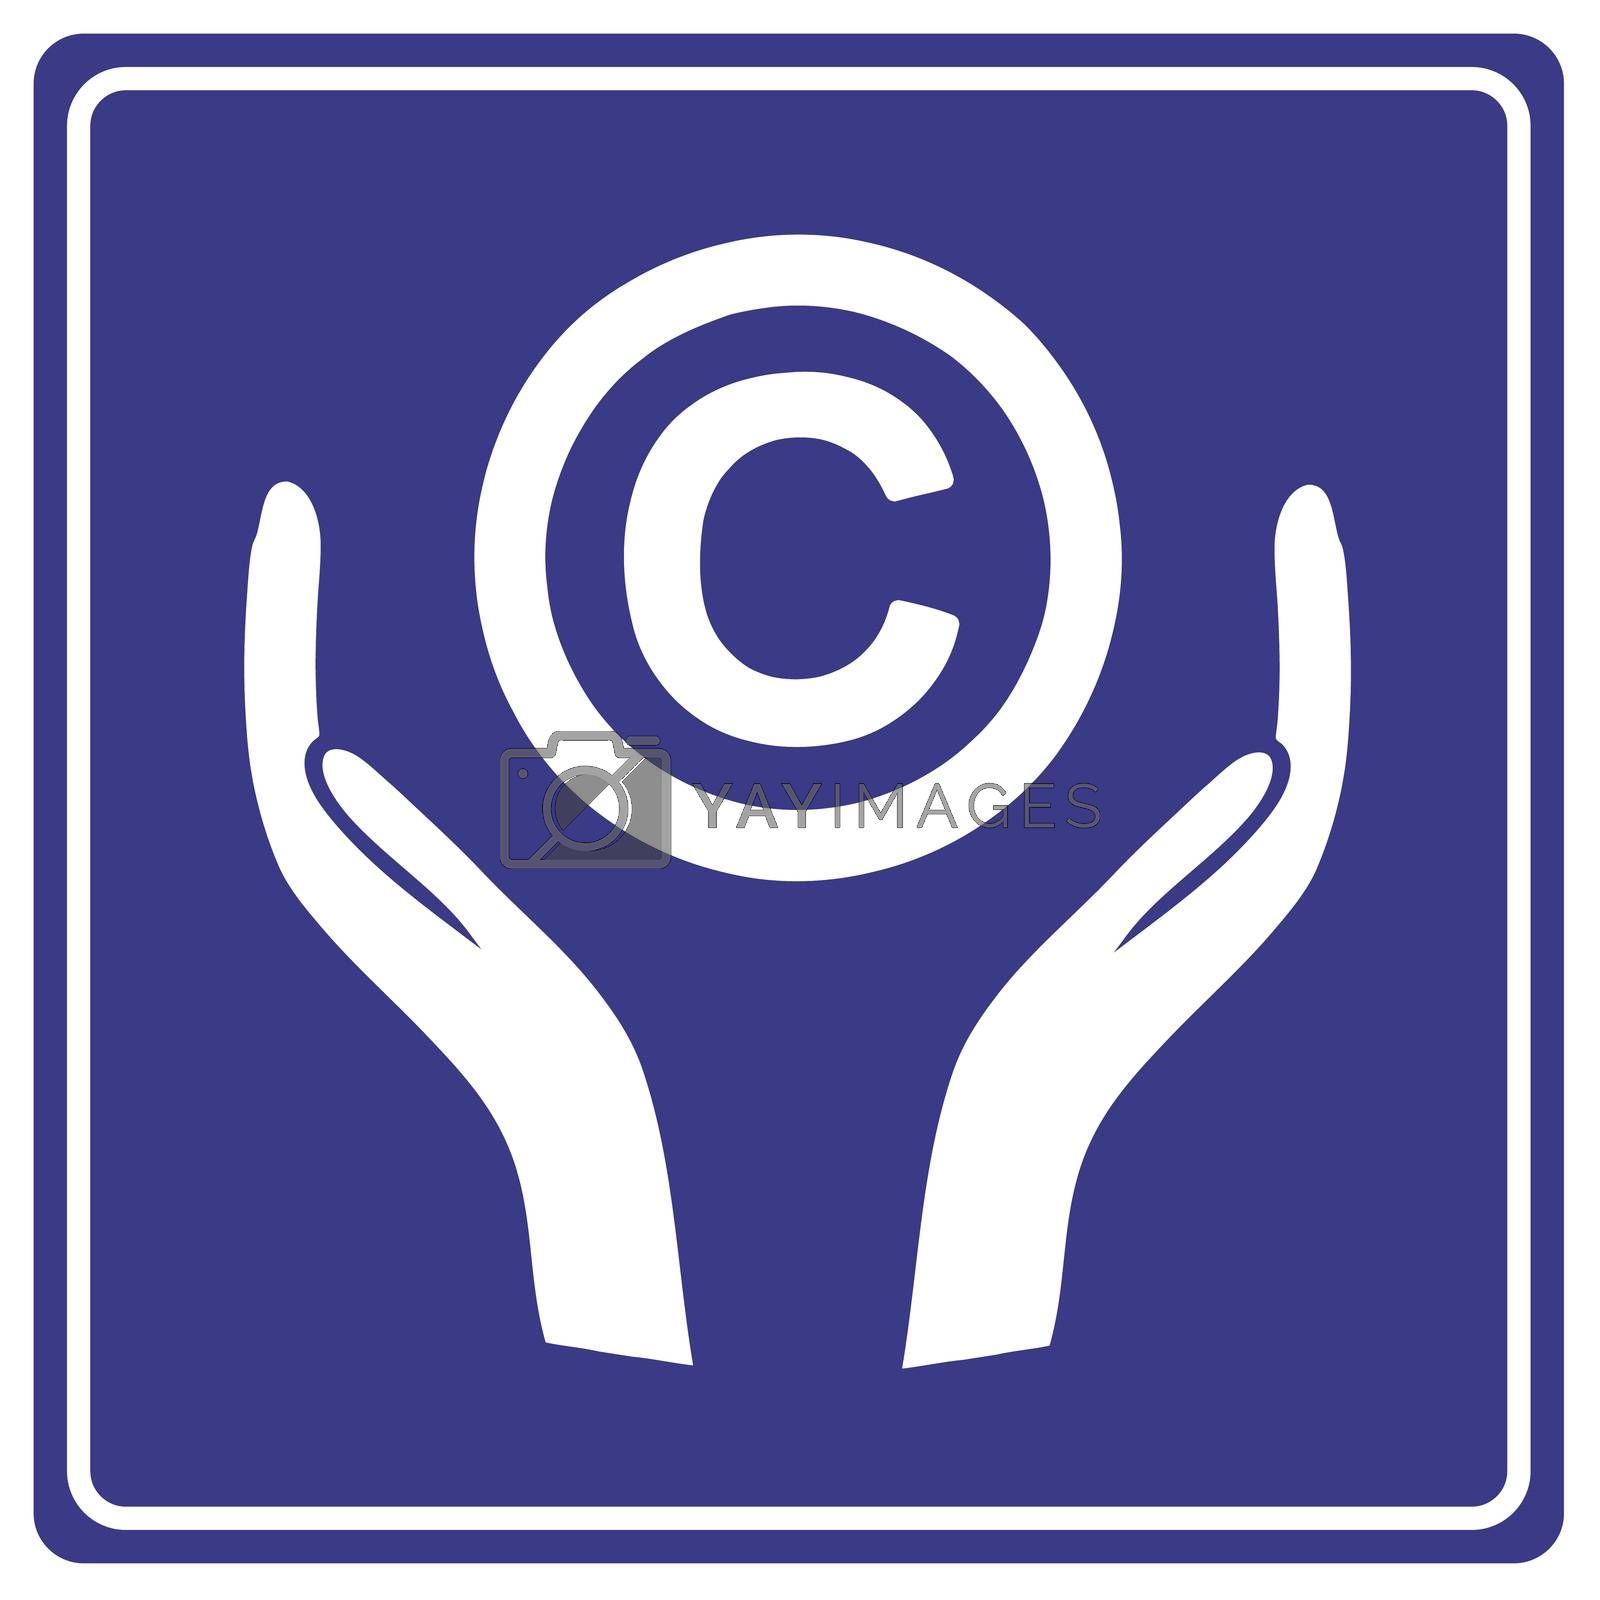 Keep your Copyright safe. Kind reminder notice to consider copyright as intellectual property and not to misuse it and infringe the law